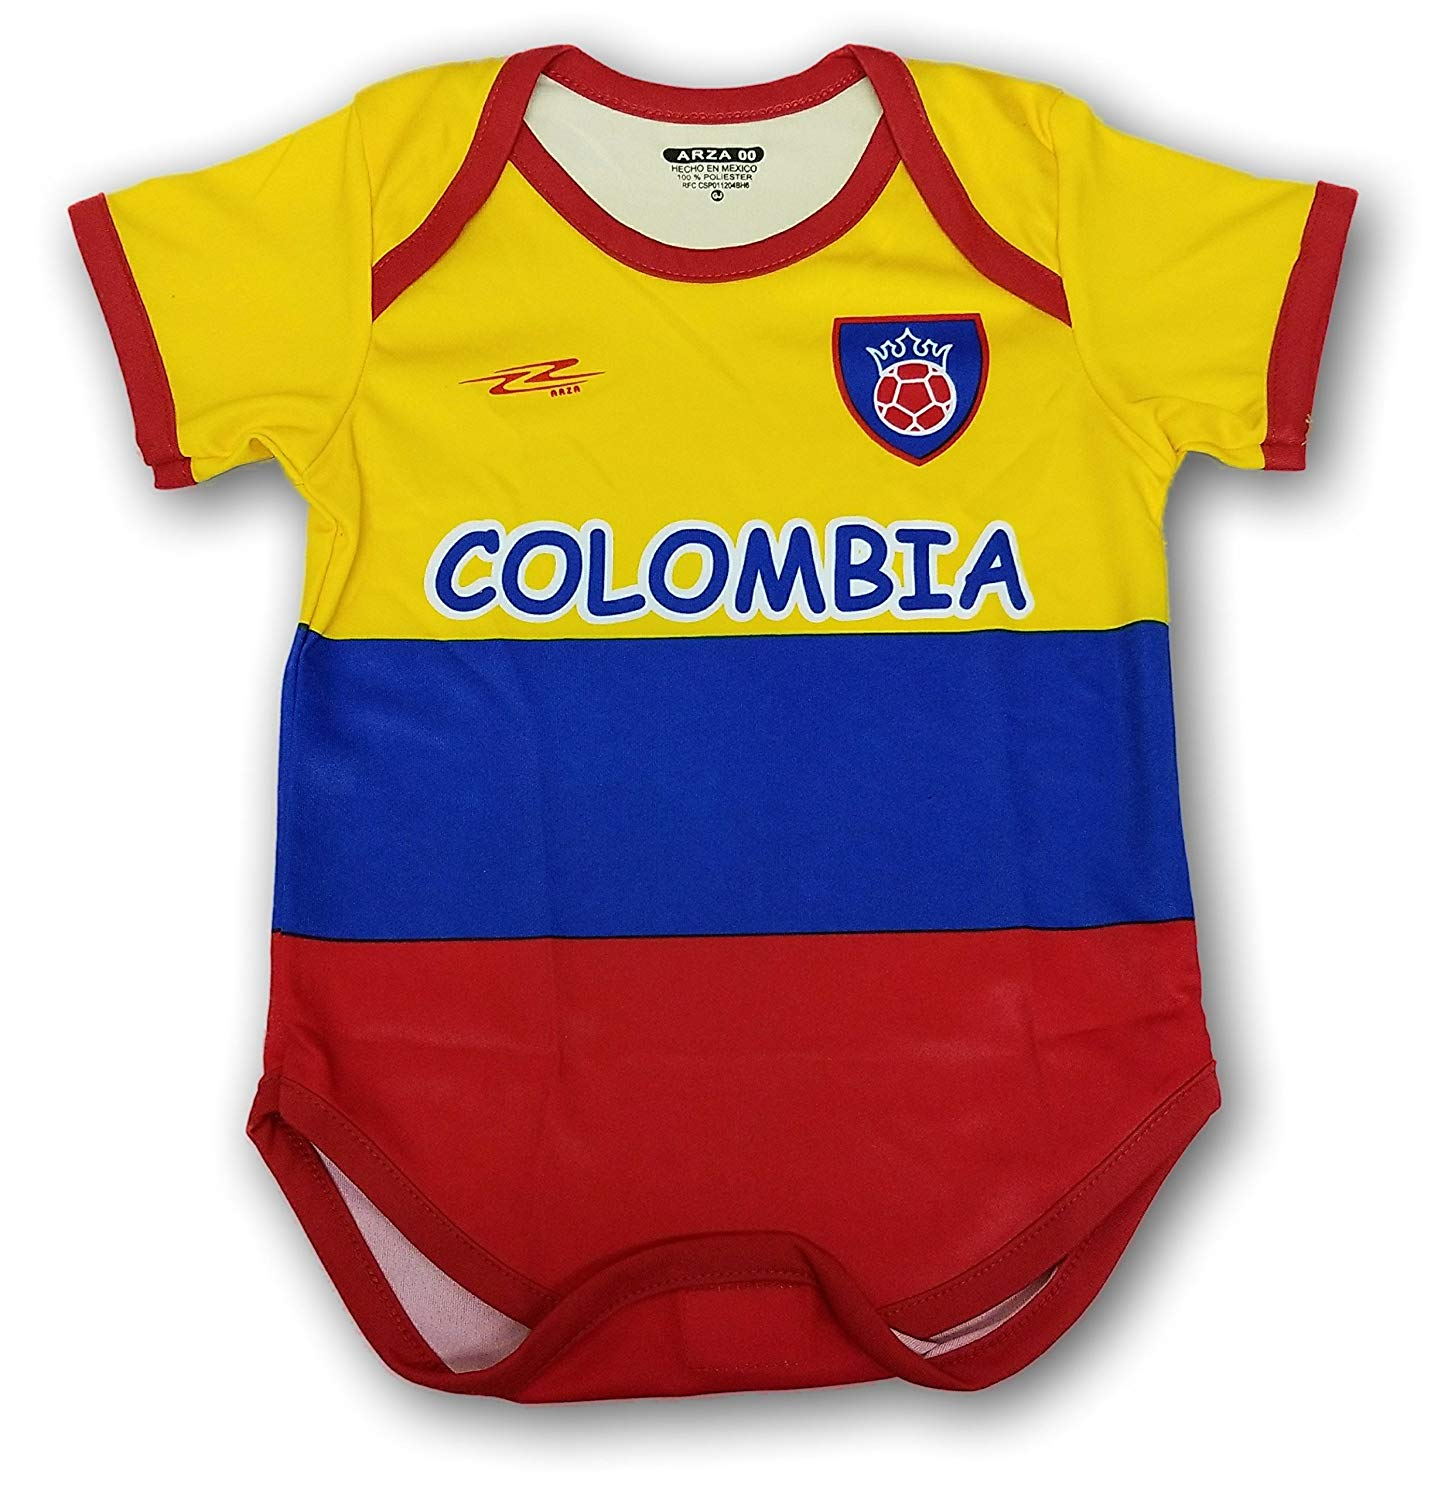 48d3e881f35 Get Quotations · Arza Sports Colombia Soccer Baby Outfit Onesie mameluco